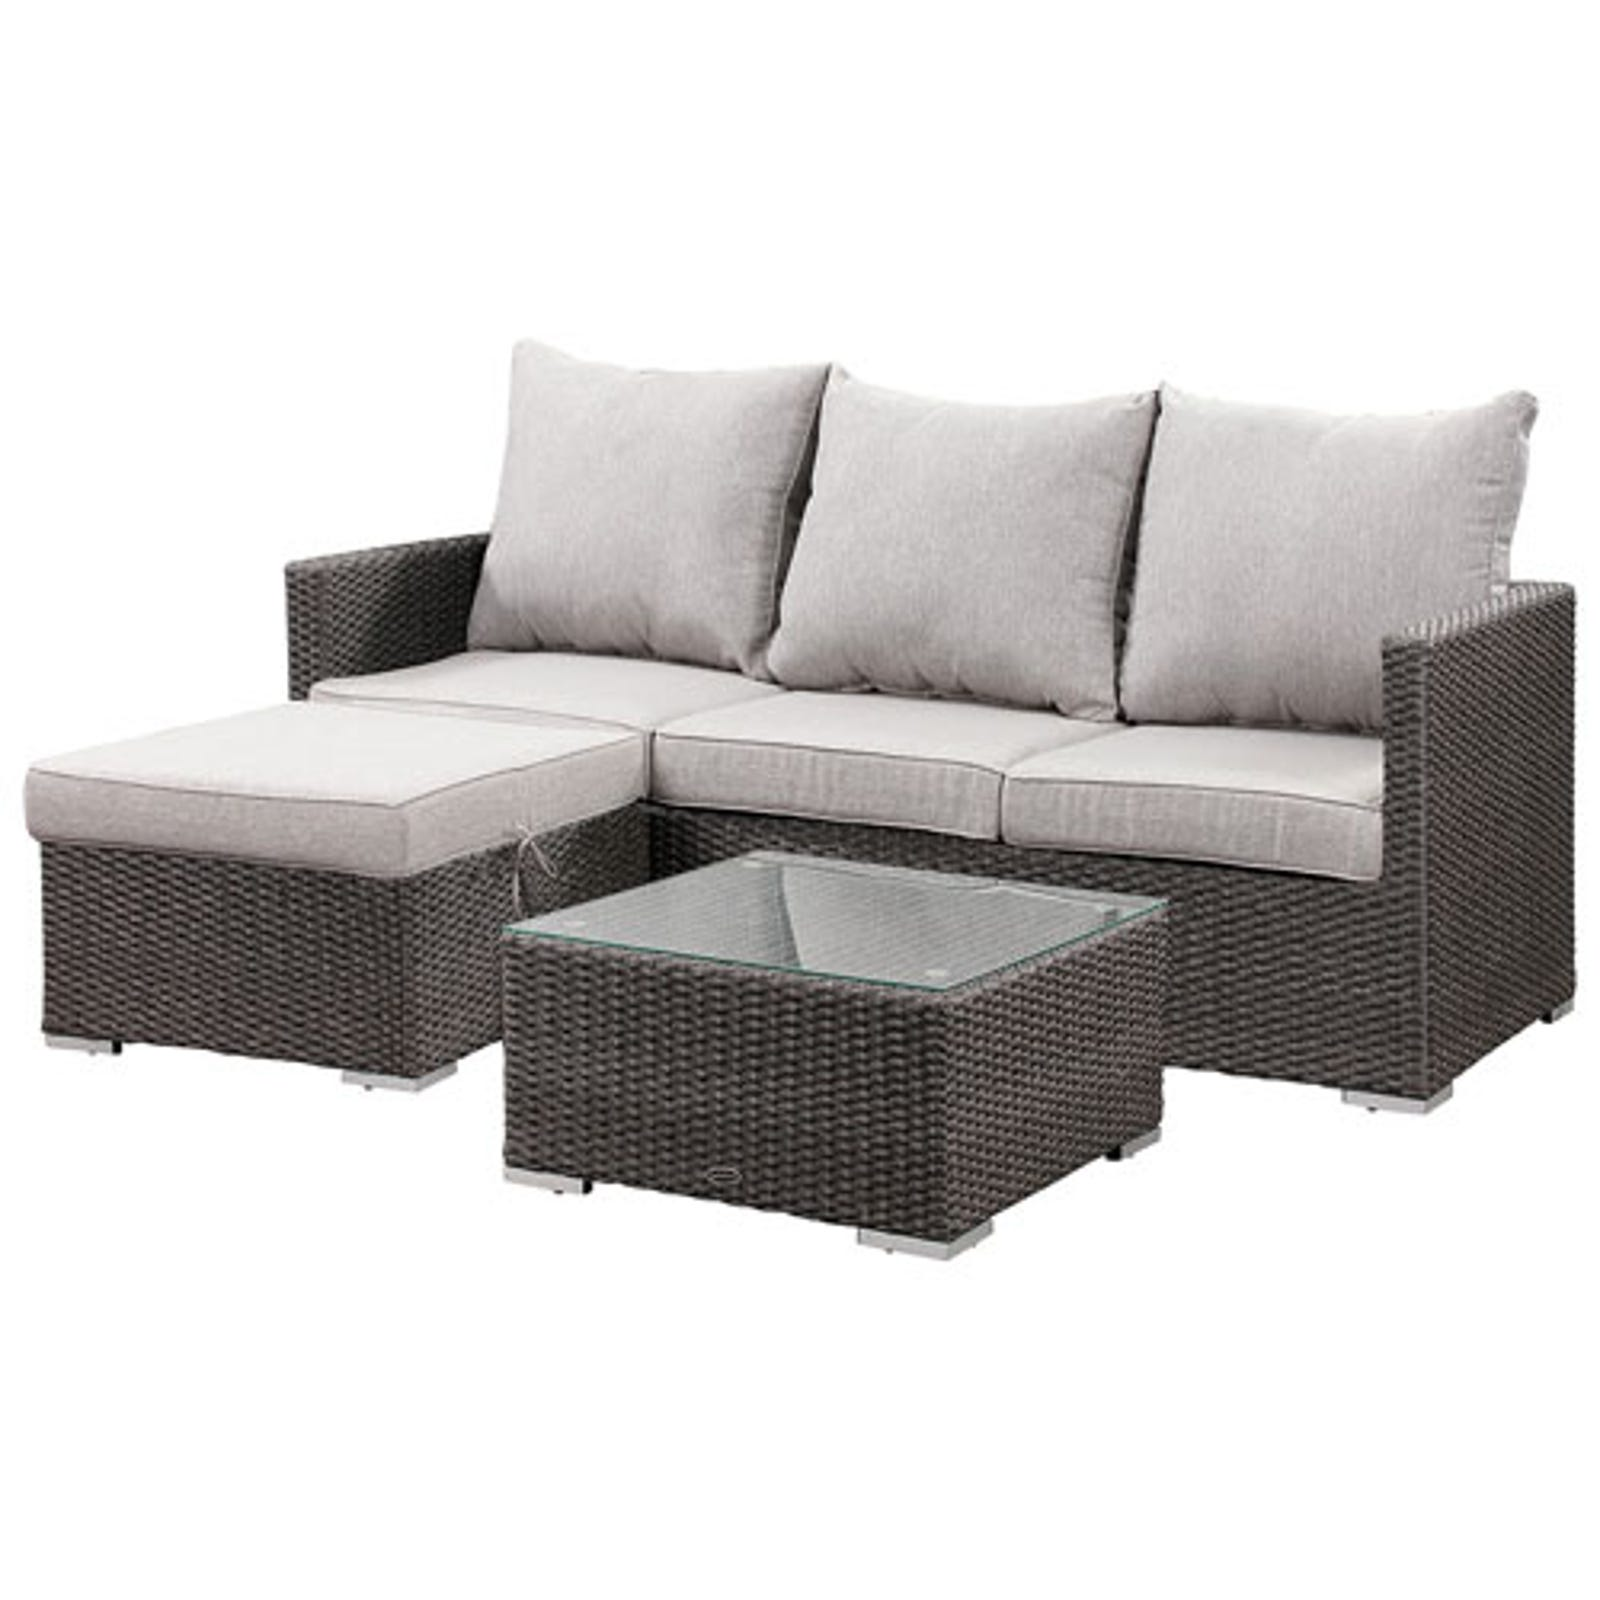 Awesome Patio Furniture Outdoor Patio Balcony Furniture Best Home Interior And Landscaping Oversignezvosmurscom